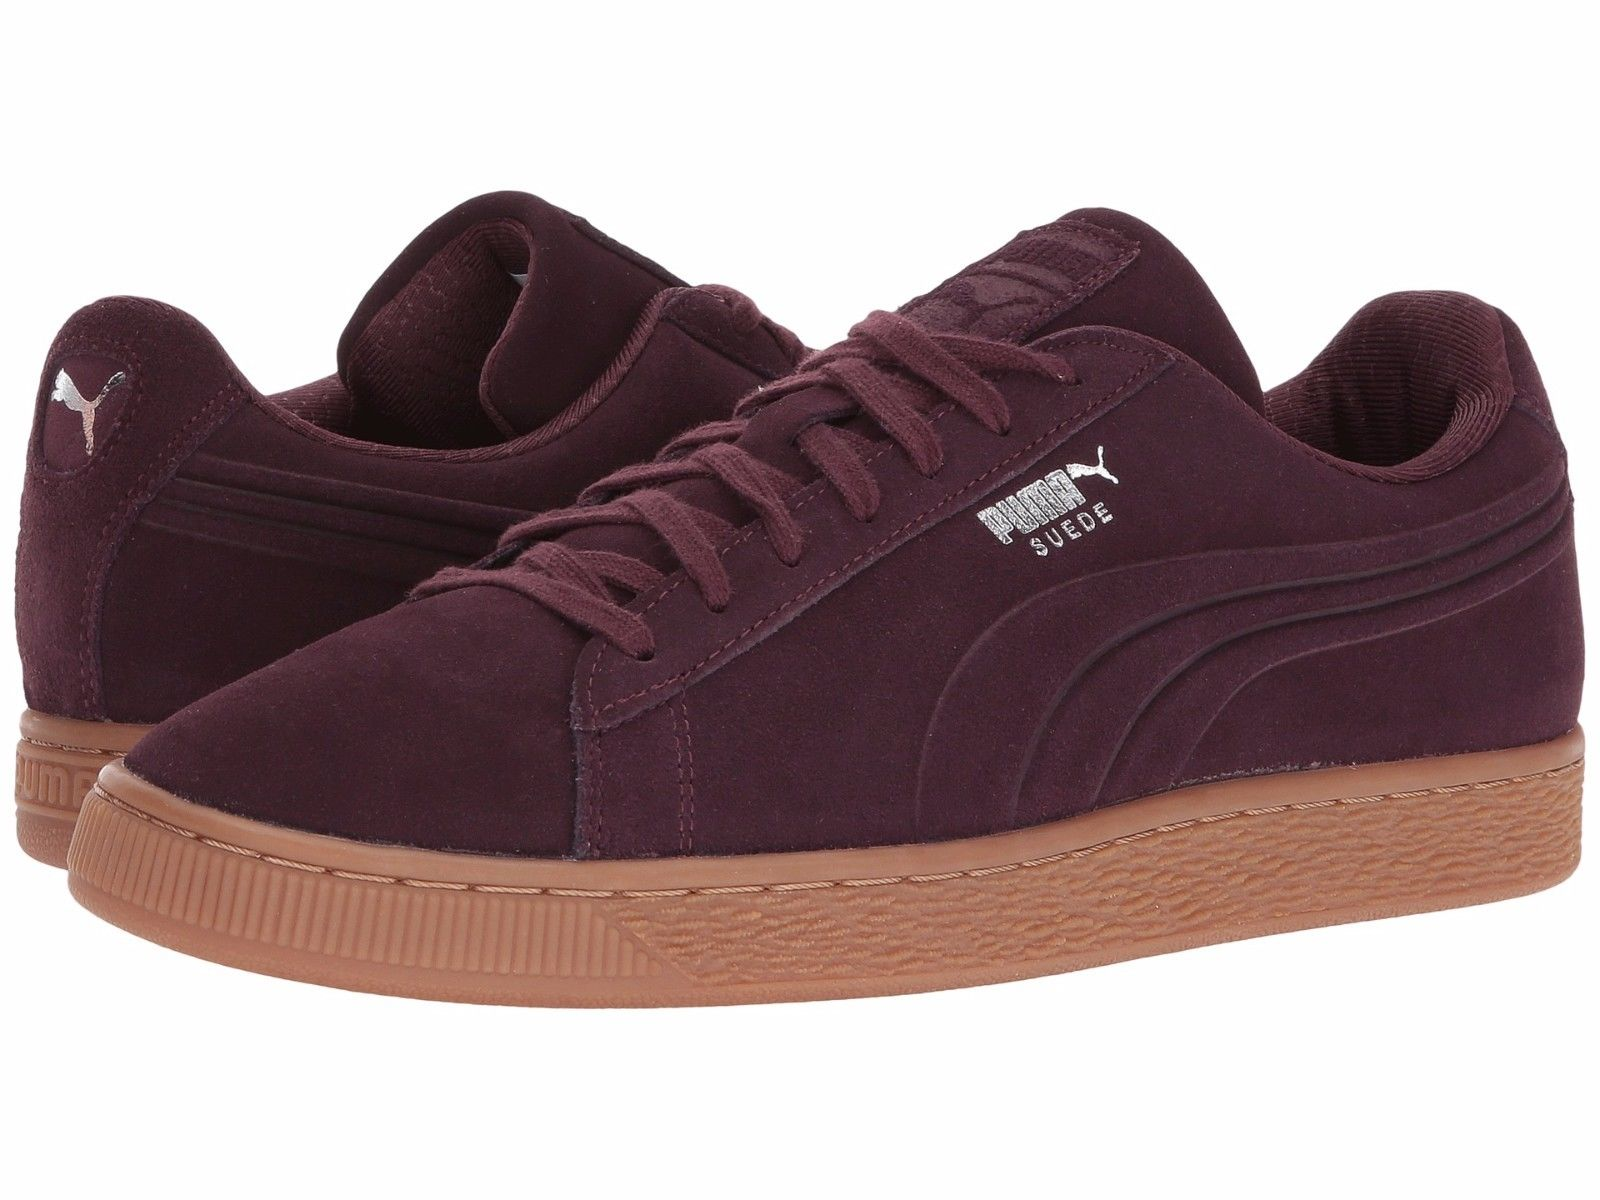 Mens Shoes Puma Suede Classic Debossed Q4 Sneakers 361098-03 Winetasting *new*